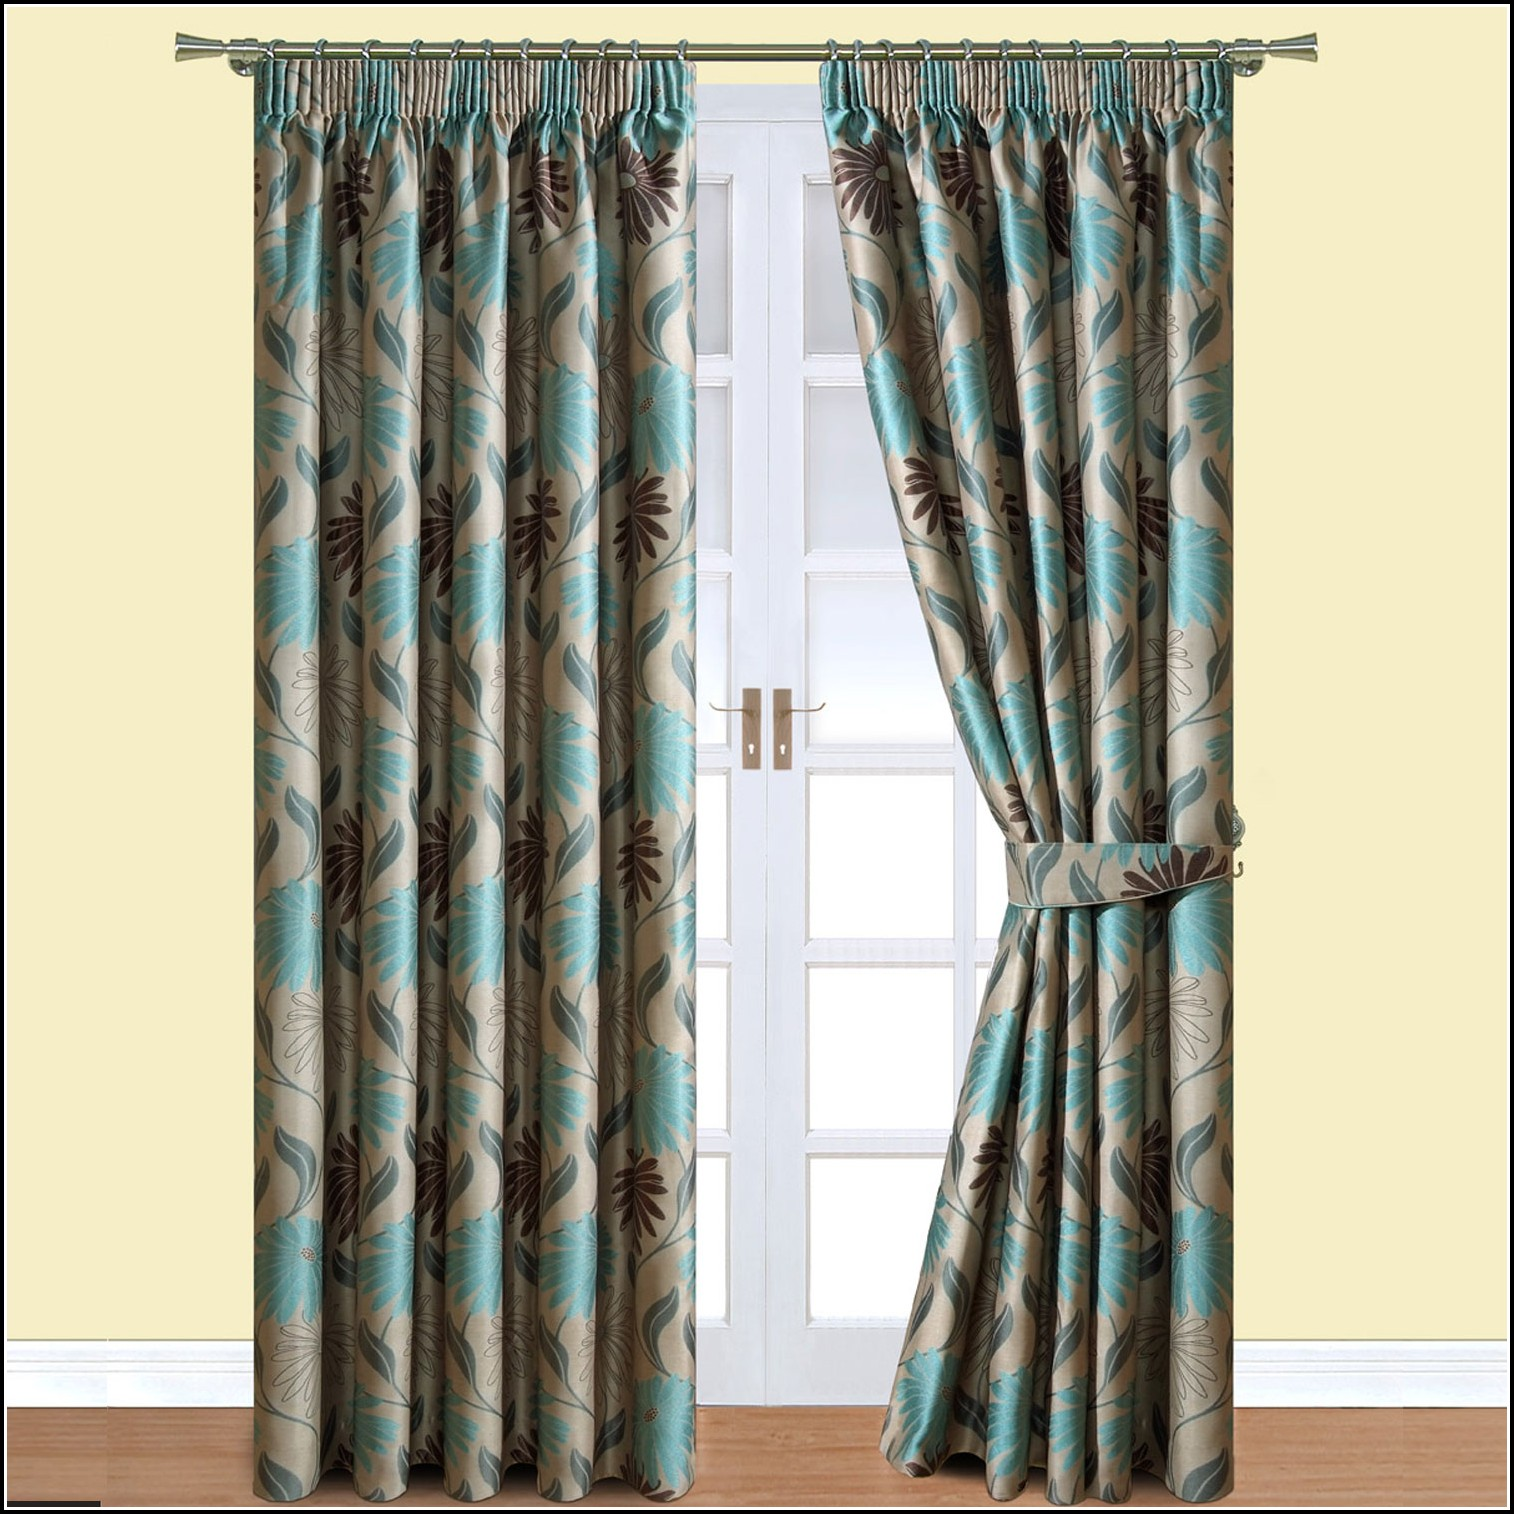 Teal And Brown Eyelet Curtains Curtains Home Design